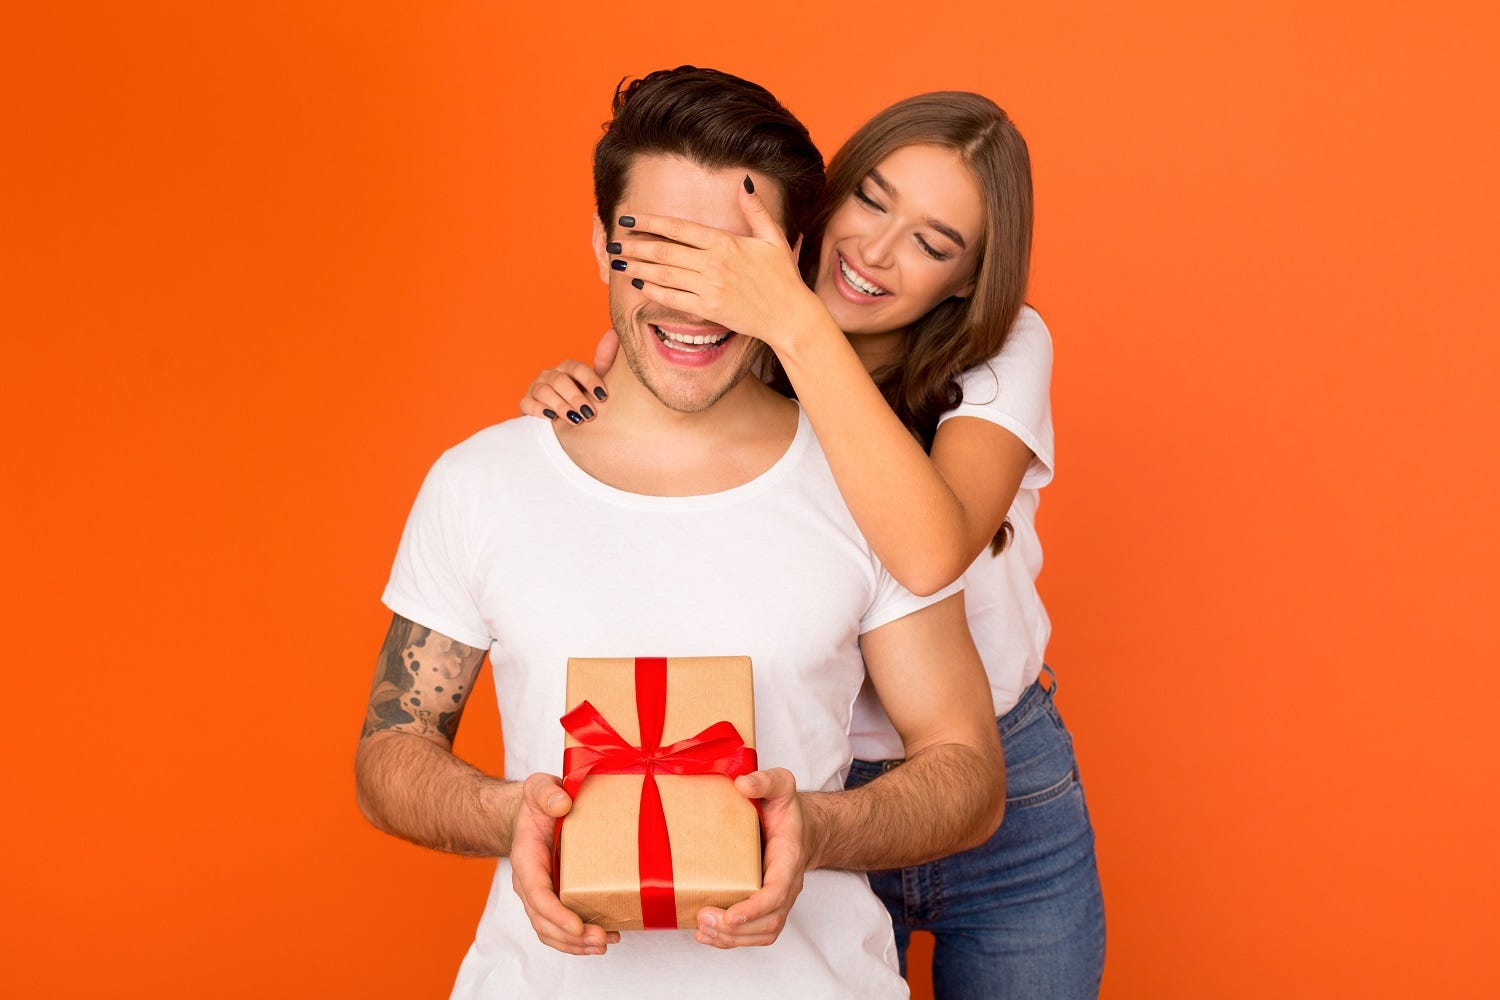 Can't find a gift for the Spouse? Here are the best Anniversary gifts ideas for Couples